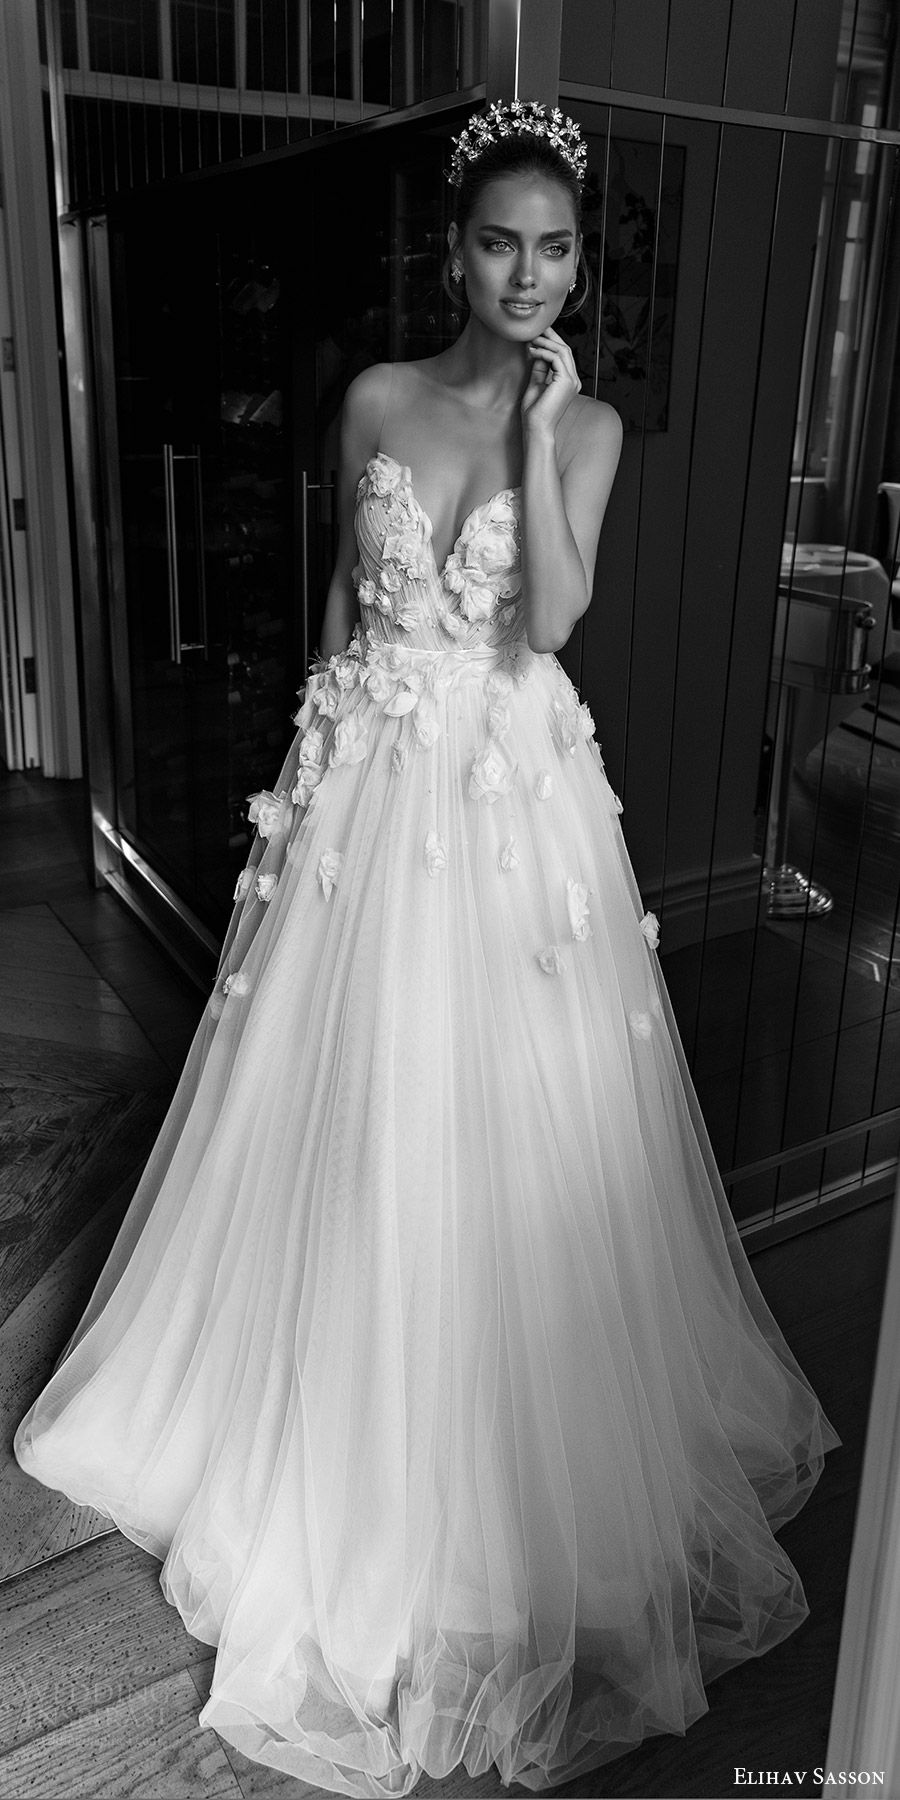 8b42604861c elihav sasson spring 2018 bridal sleeveless illusion jewel sweetheart  embellished ruched bodice tulle ball gown wedding dress (vj 007) fv sweep  train ...